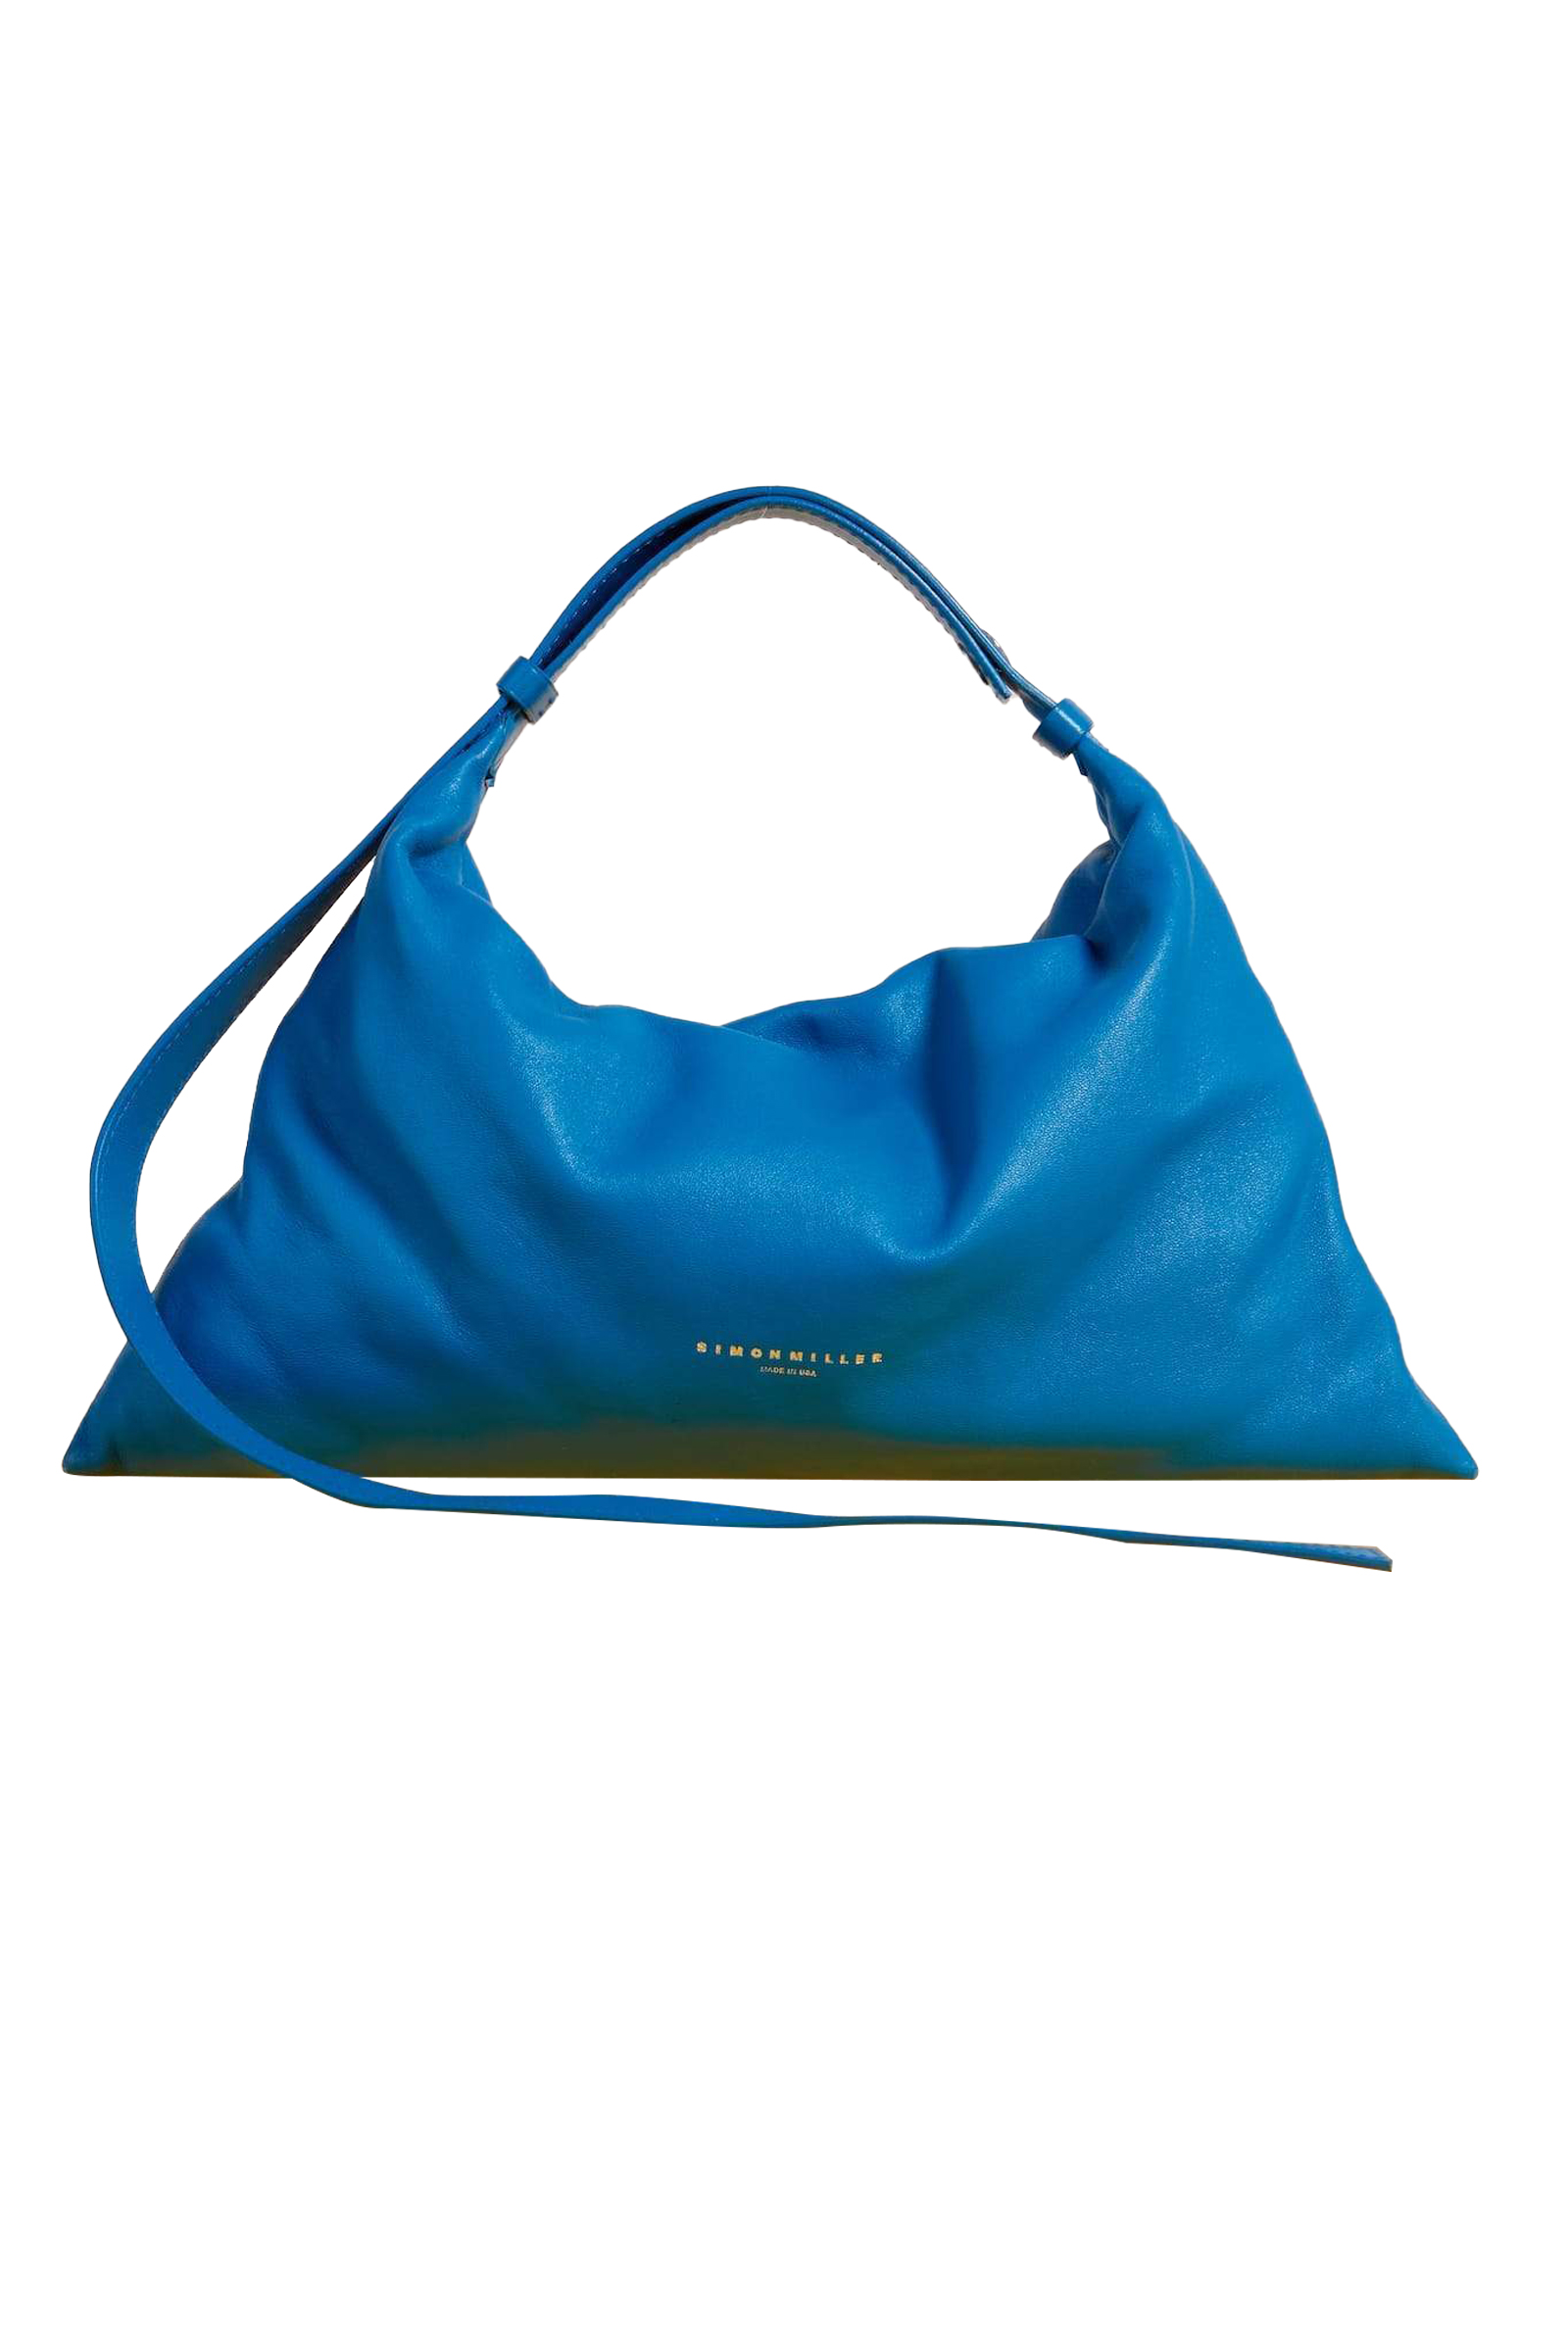 Puffin Bag in Soaring Blue by Simon Miller - 1